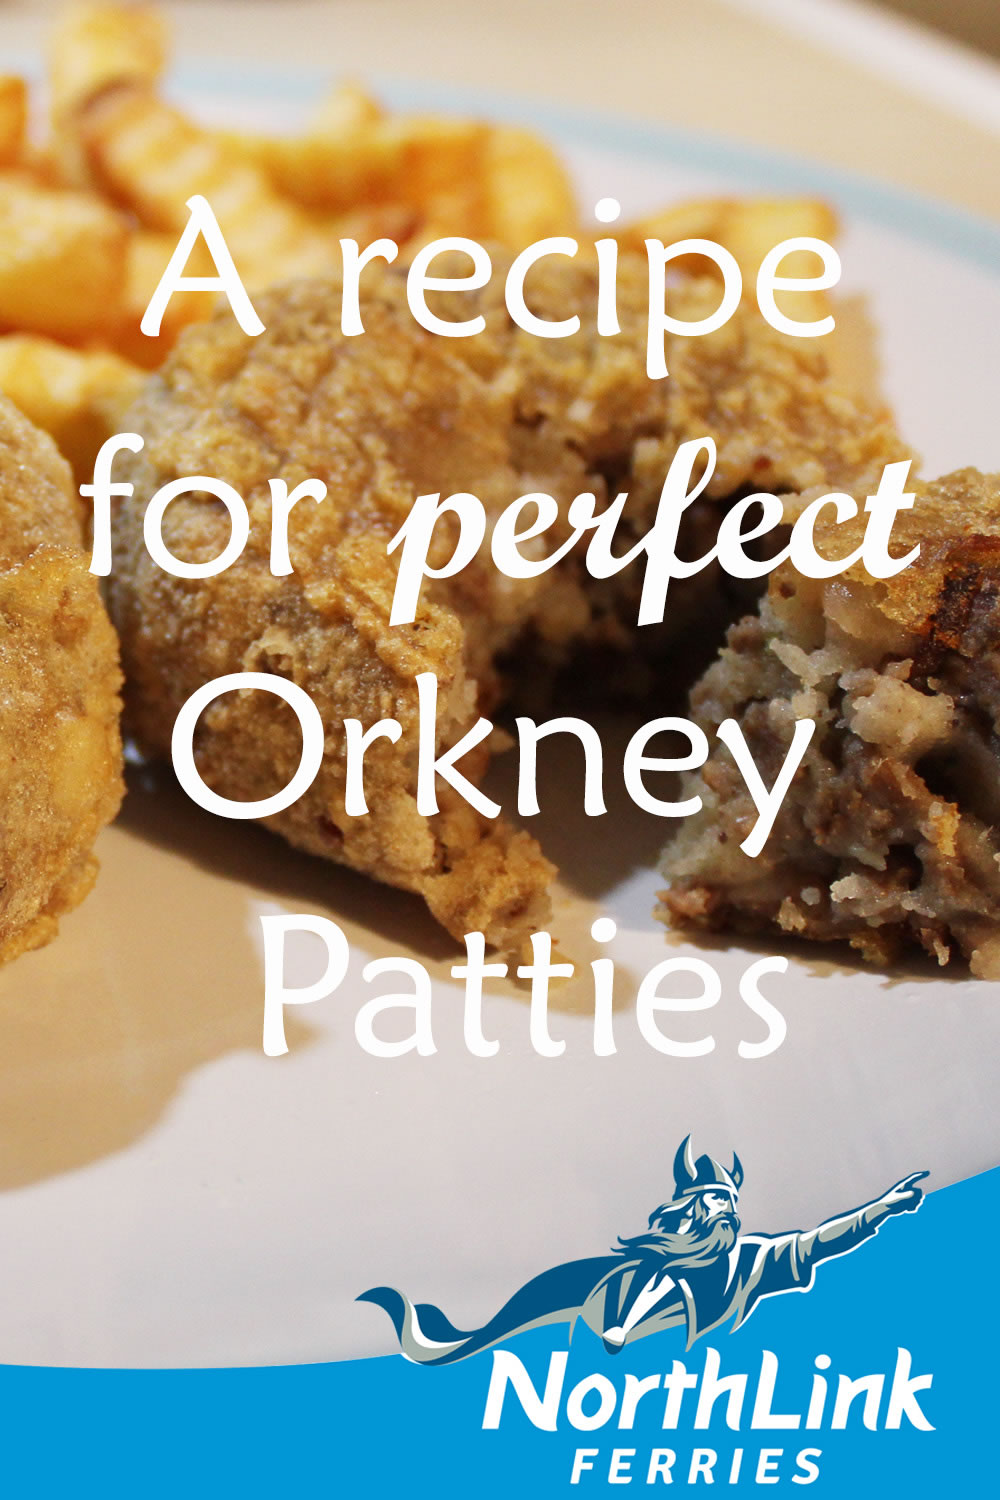 A Recipe for perfect Orkney Patties